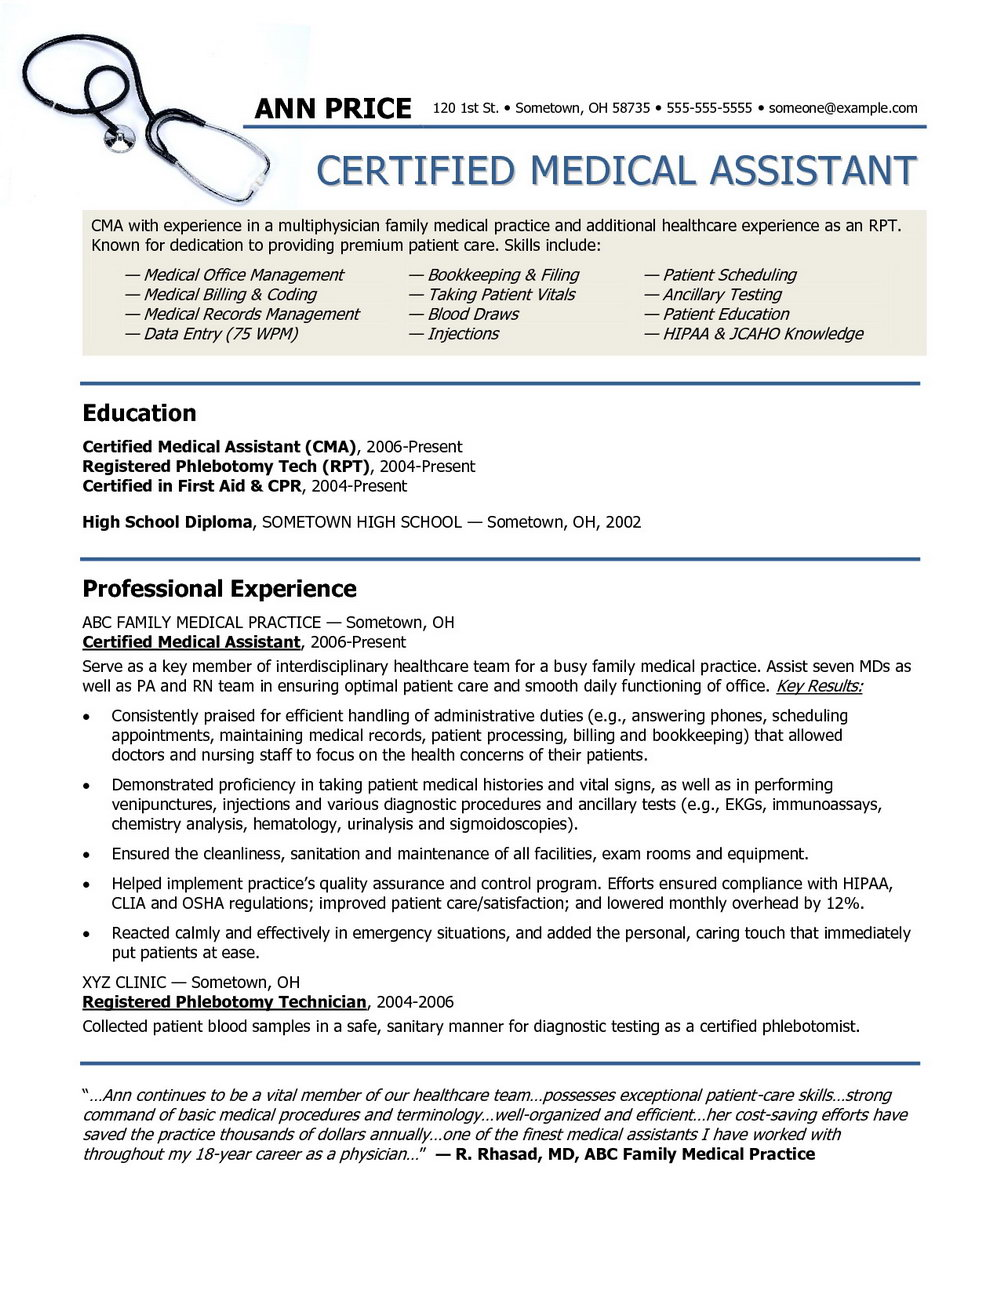 Free Resume Templates Medical Assistant